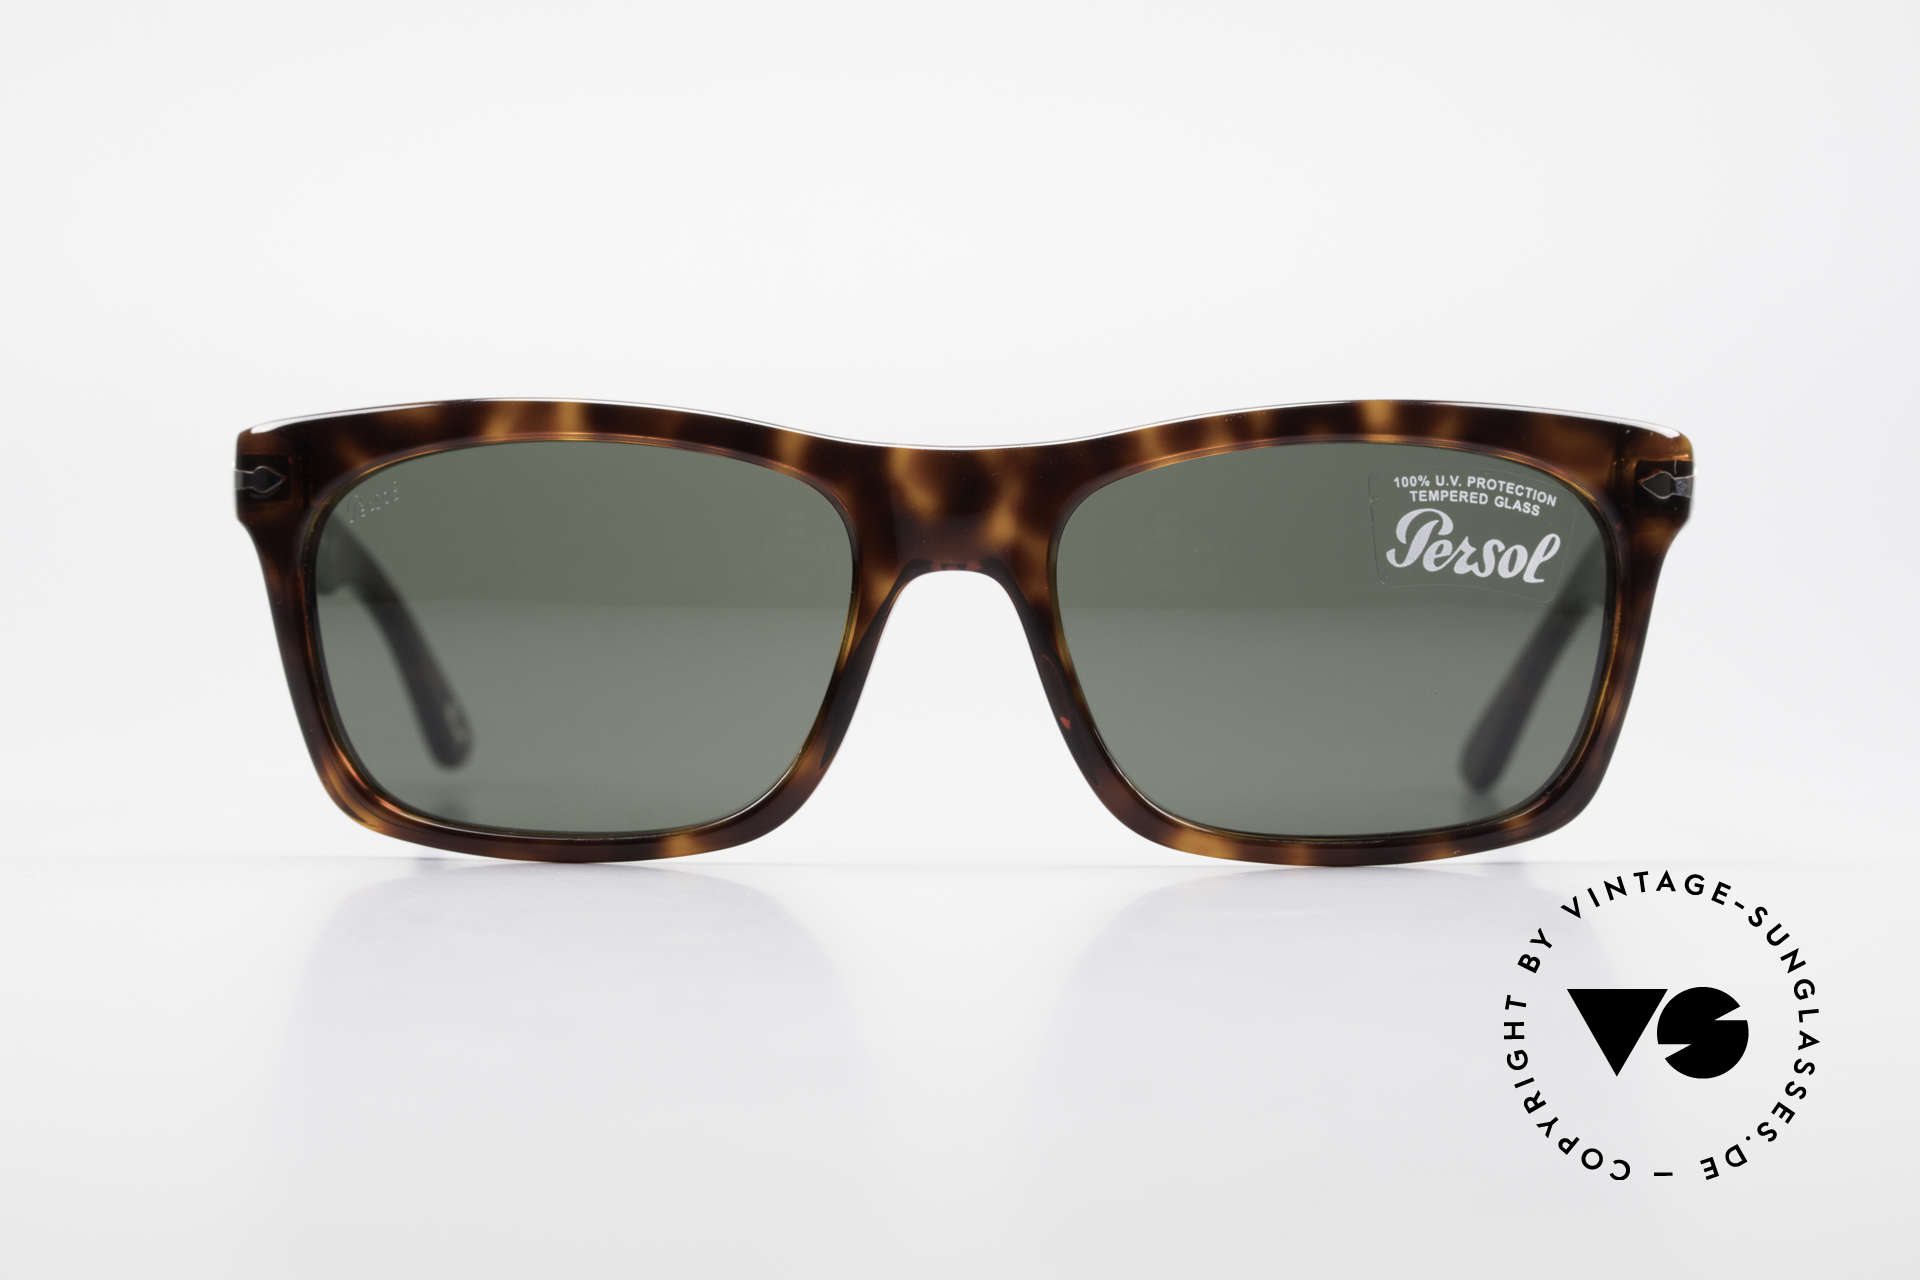 Persol 3062 Classic Unisex Sunglasses, classic timeless design and best craftsmanship, Made for Men and Women